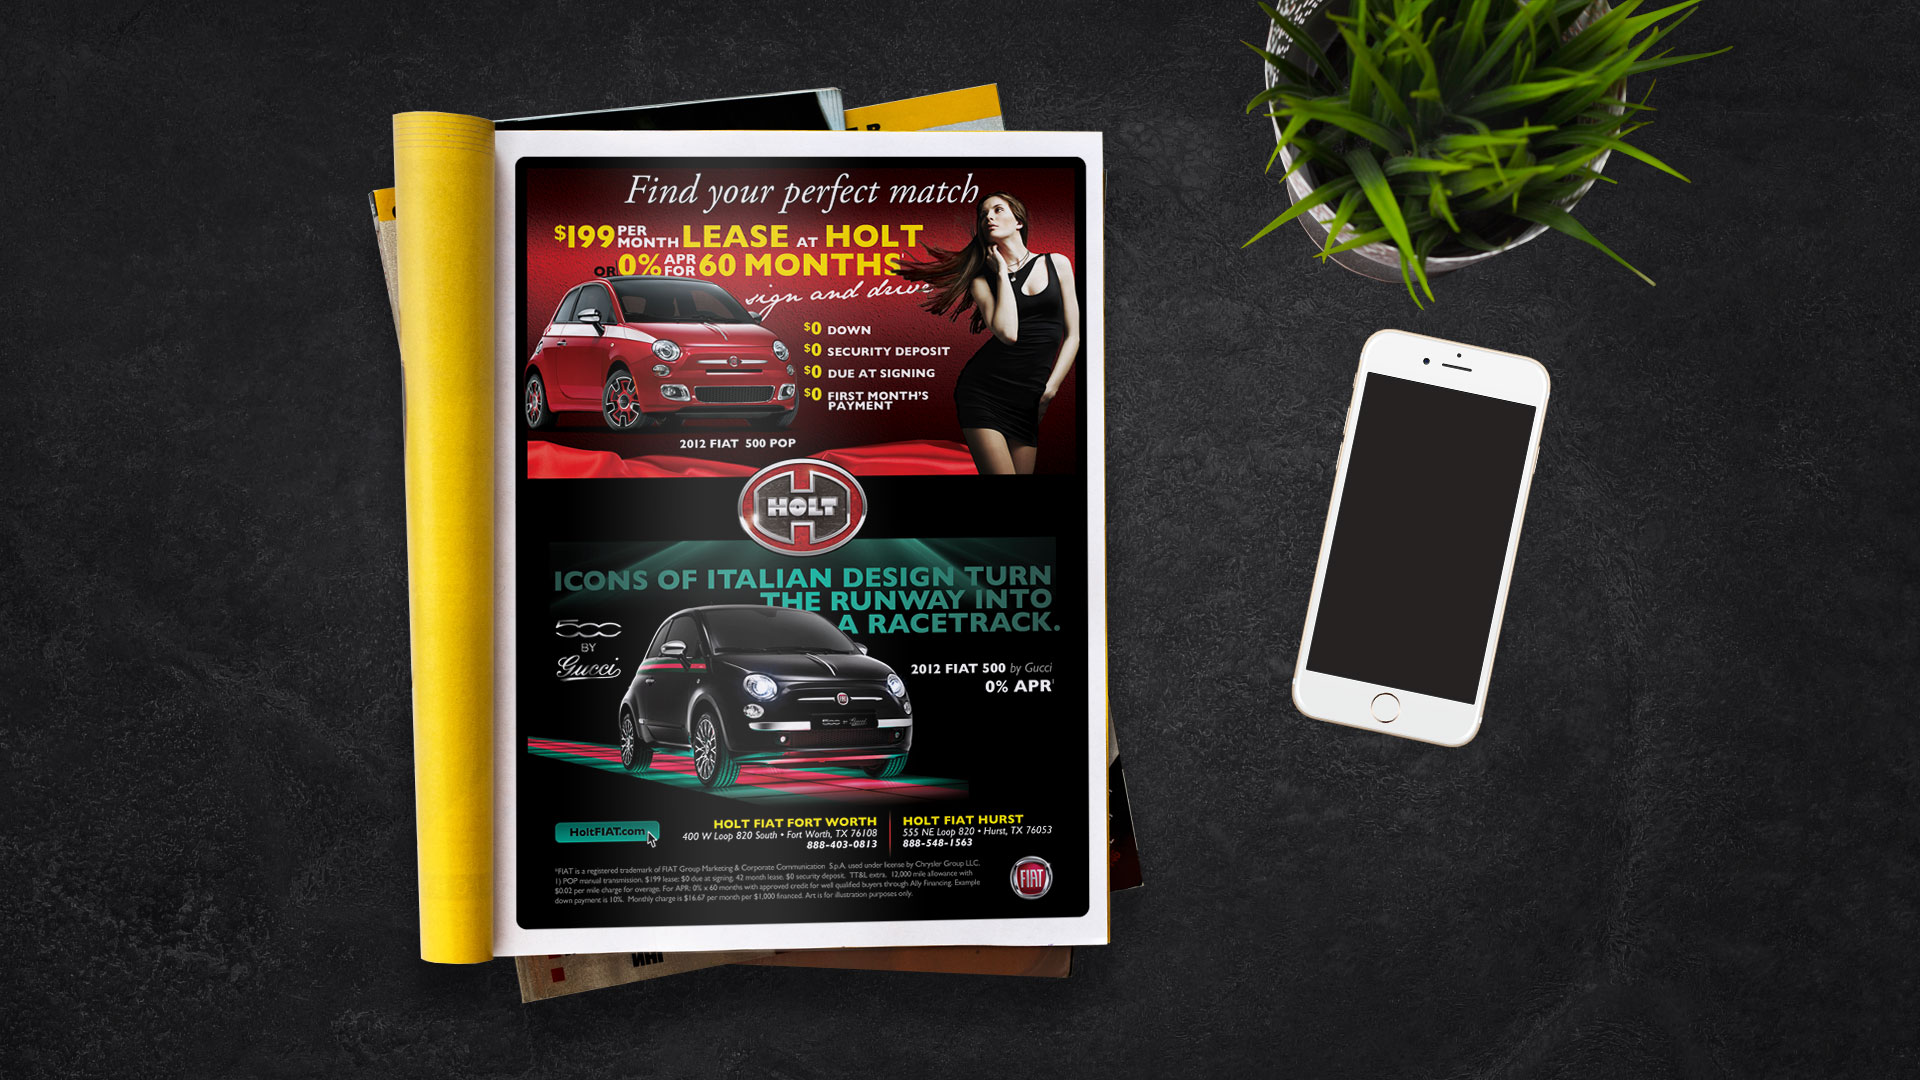 Magazine Ad: Holt Fiat Find Your Match